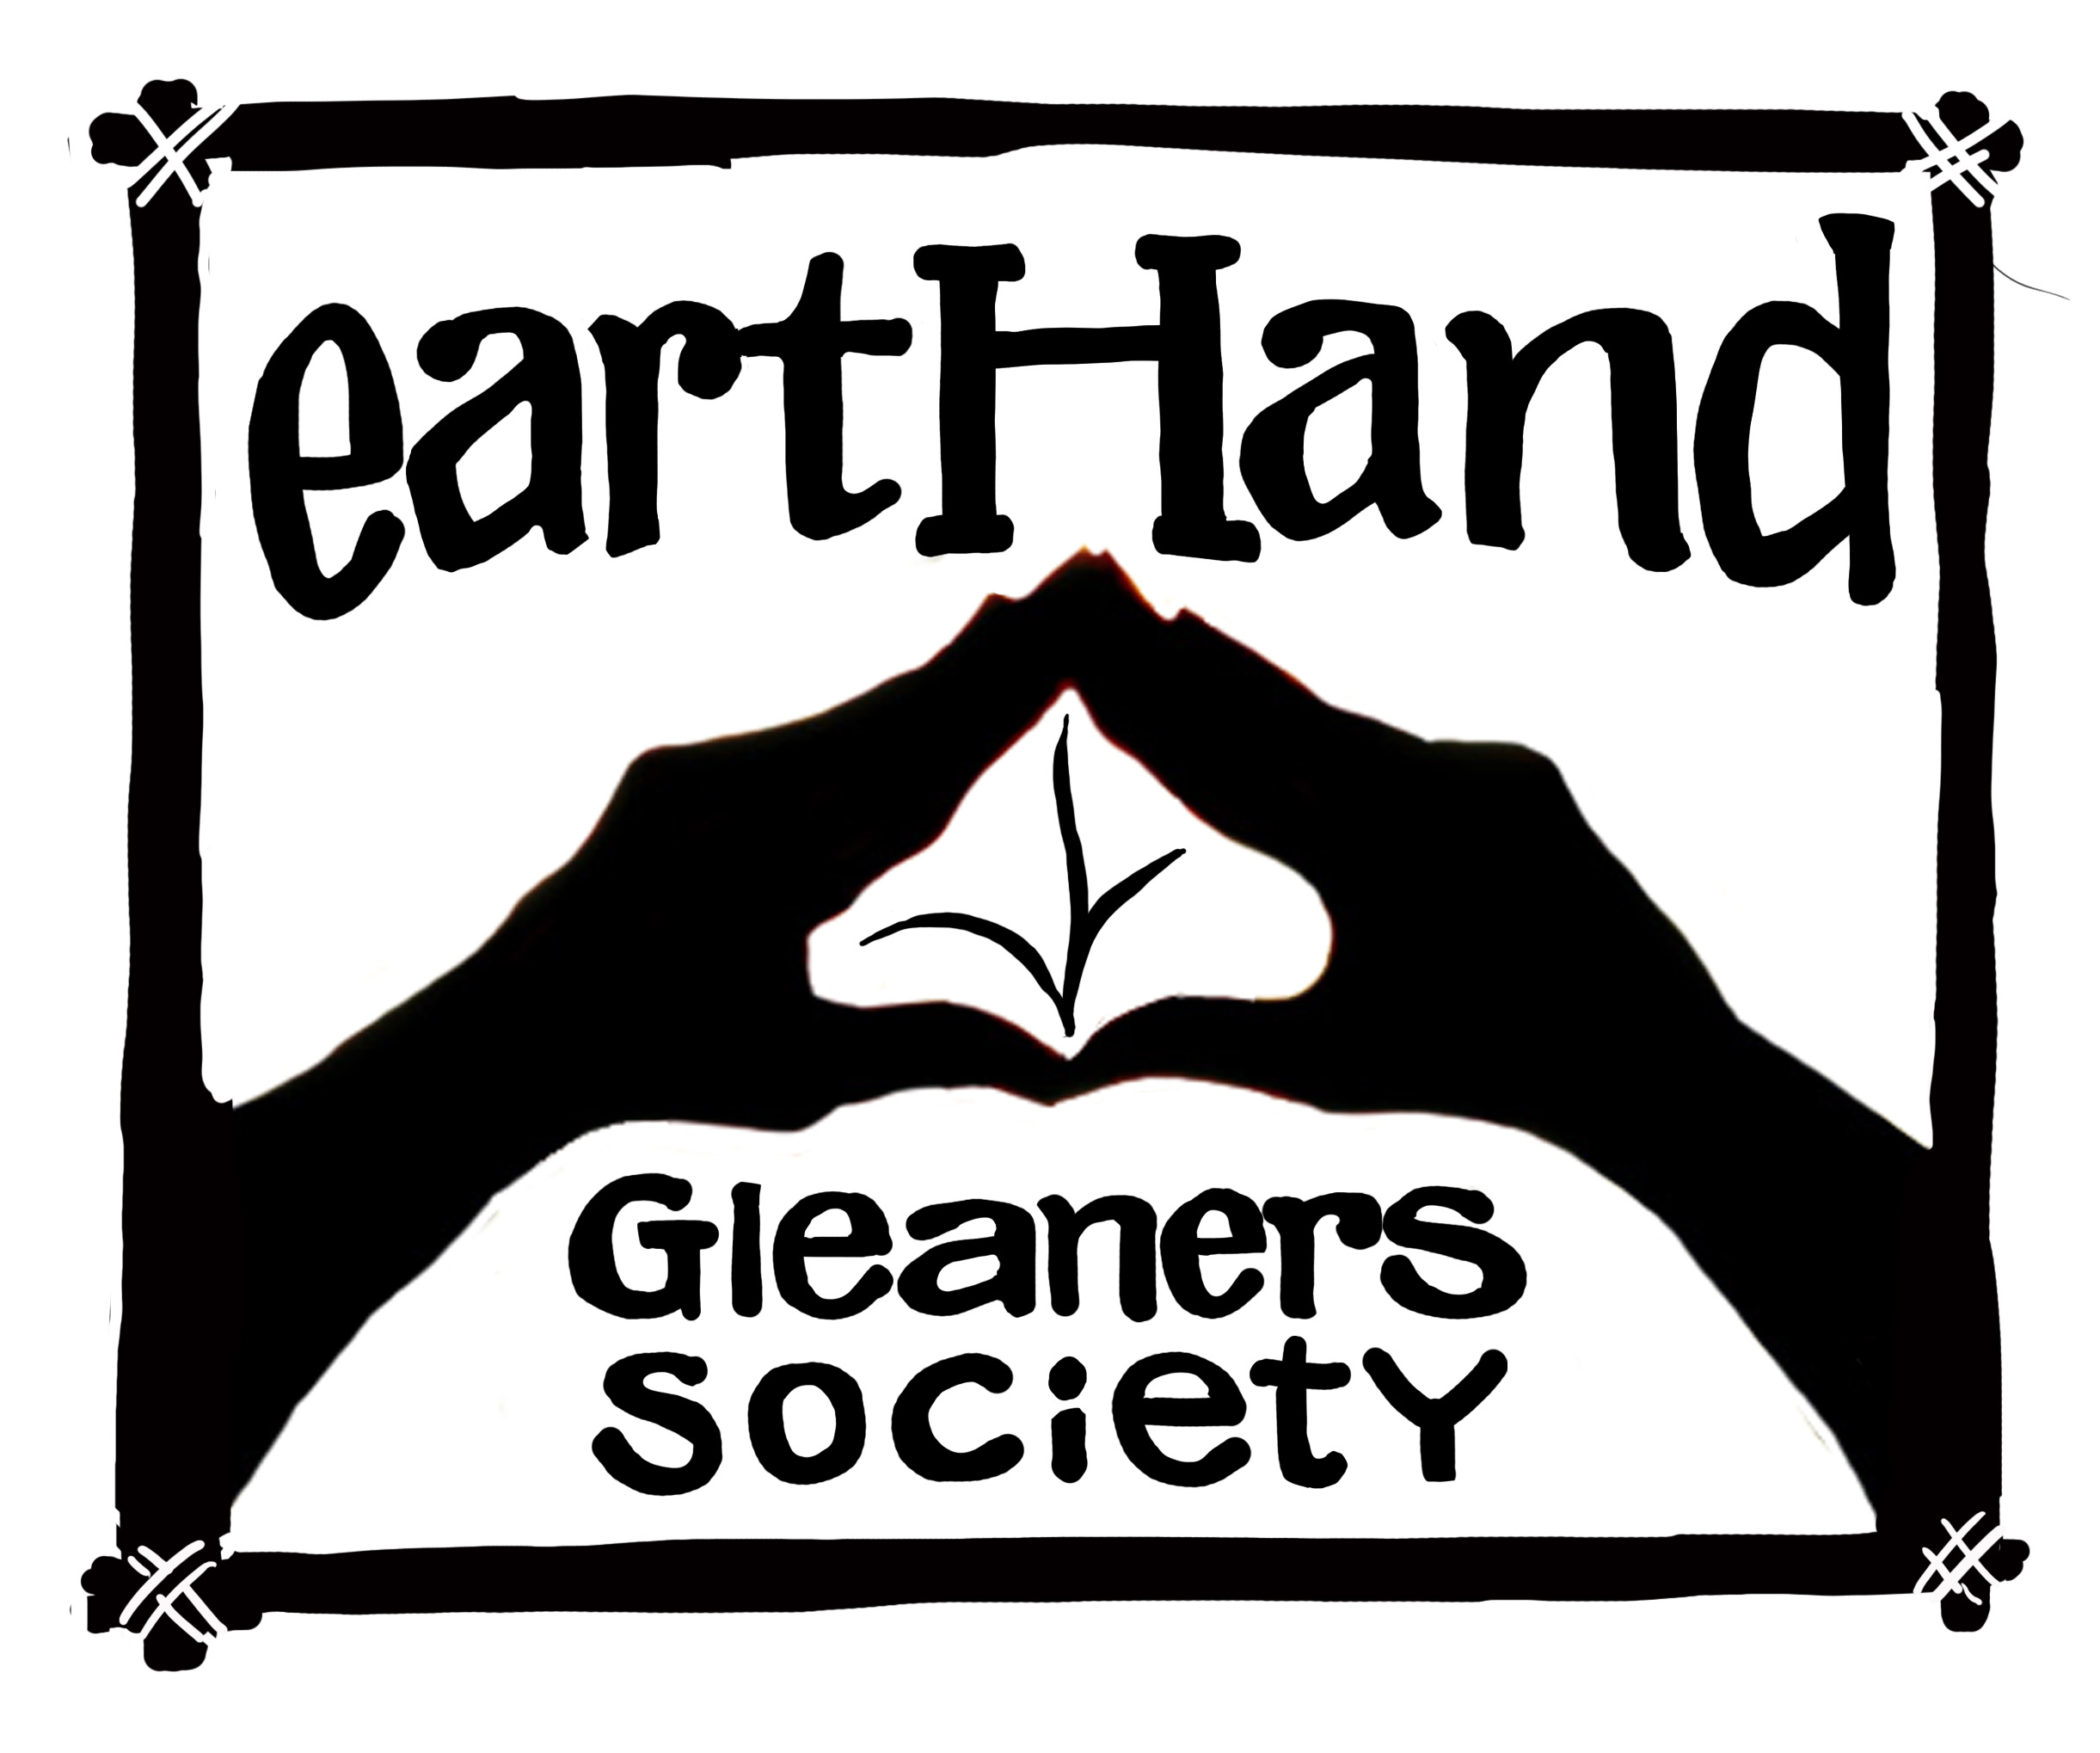 Earthand_Gleaners_logo_black_and_white(1).jpg